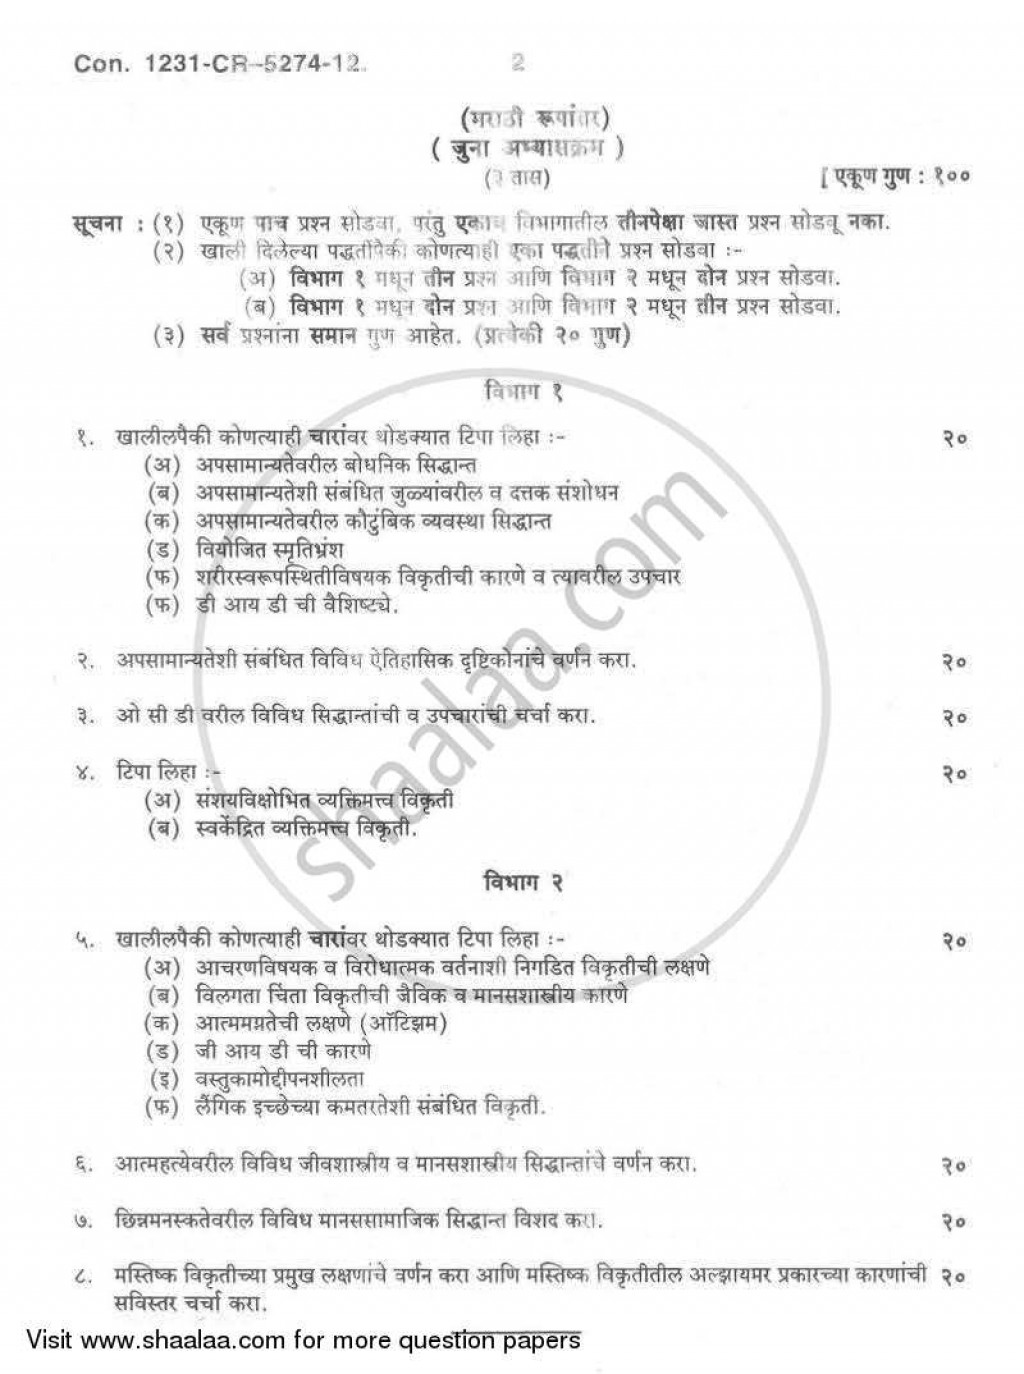 013 University Of Mumbai Bachelor Abnormal Psychology Ty Yearly Pattern Semester Tyba 2011 2f59827d7879f465fa7b425ed7c62431e Topics For Researcher Unique Research Paper Large